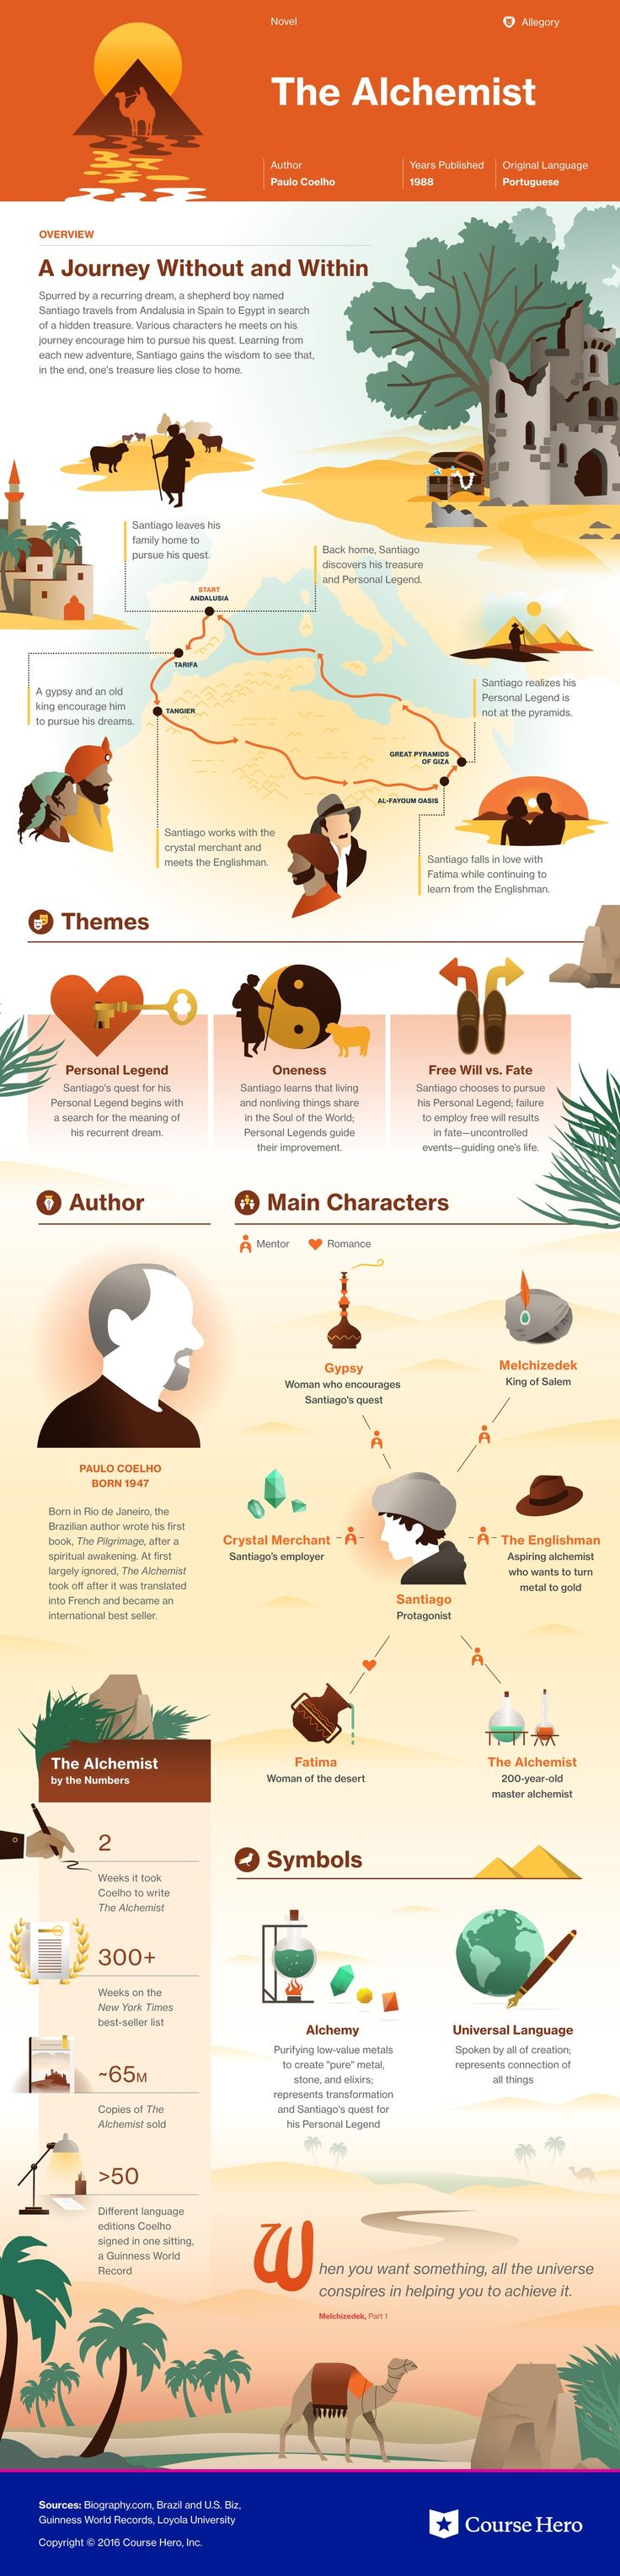 best ideas about alchemist book the alchemist the alchemist infographic